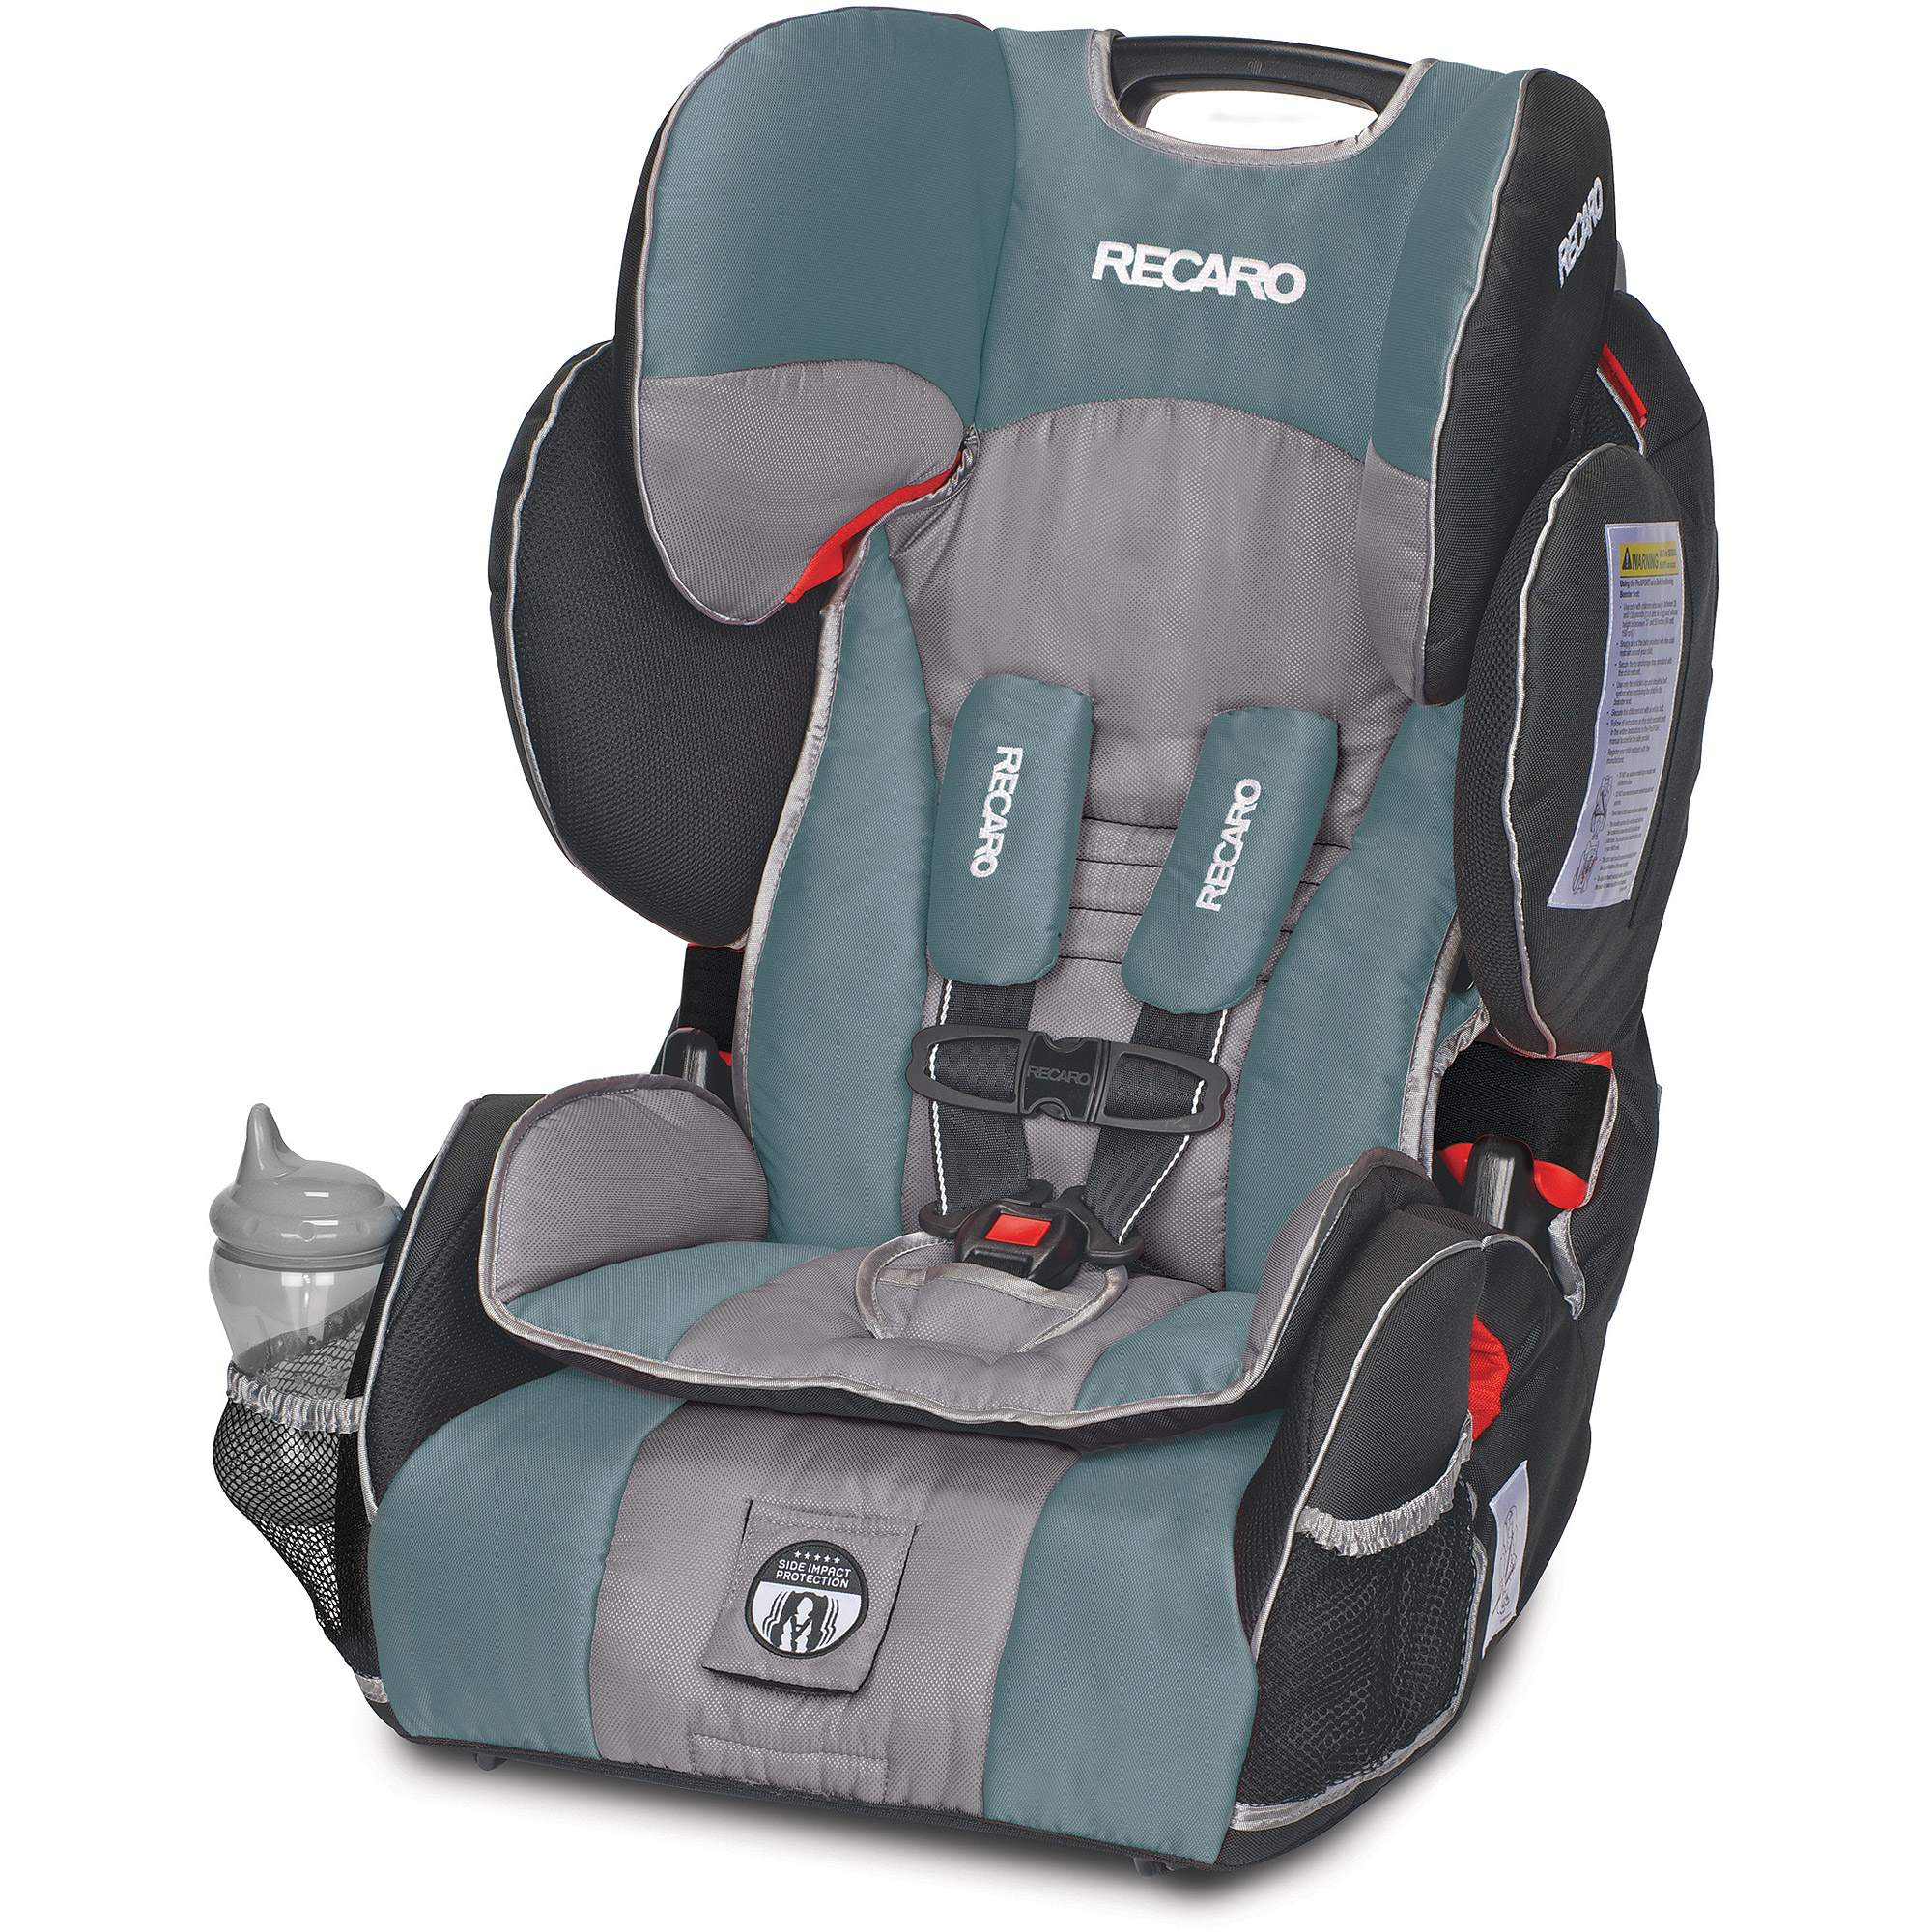 RECARO Performance SPORT Combination Harness Booster Car Seat - Marine